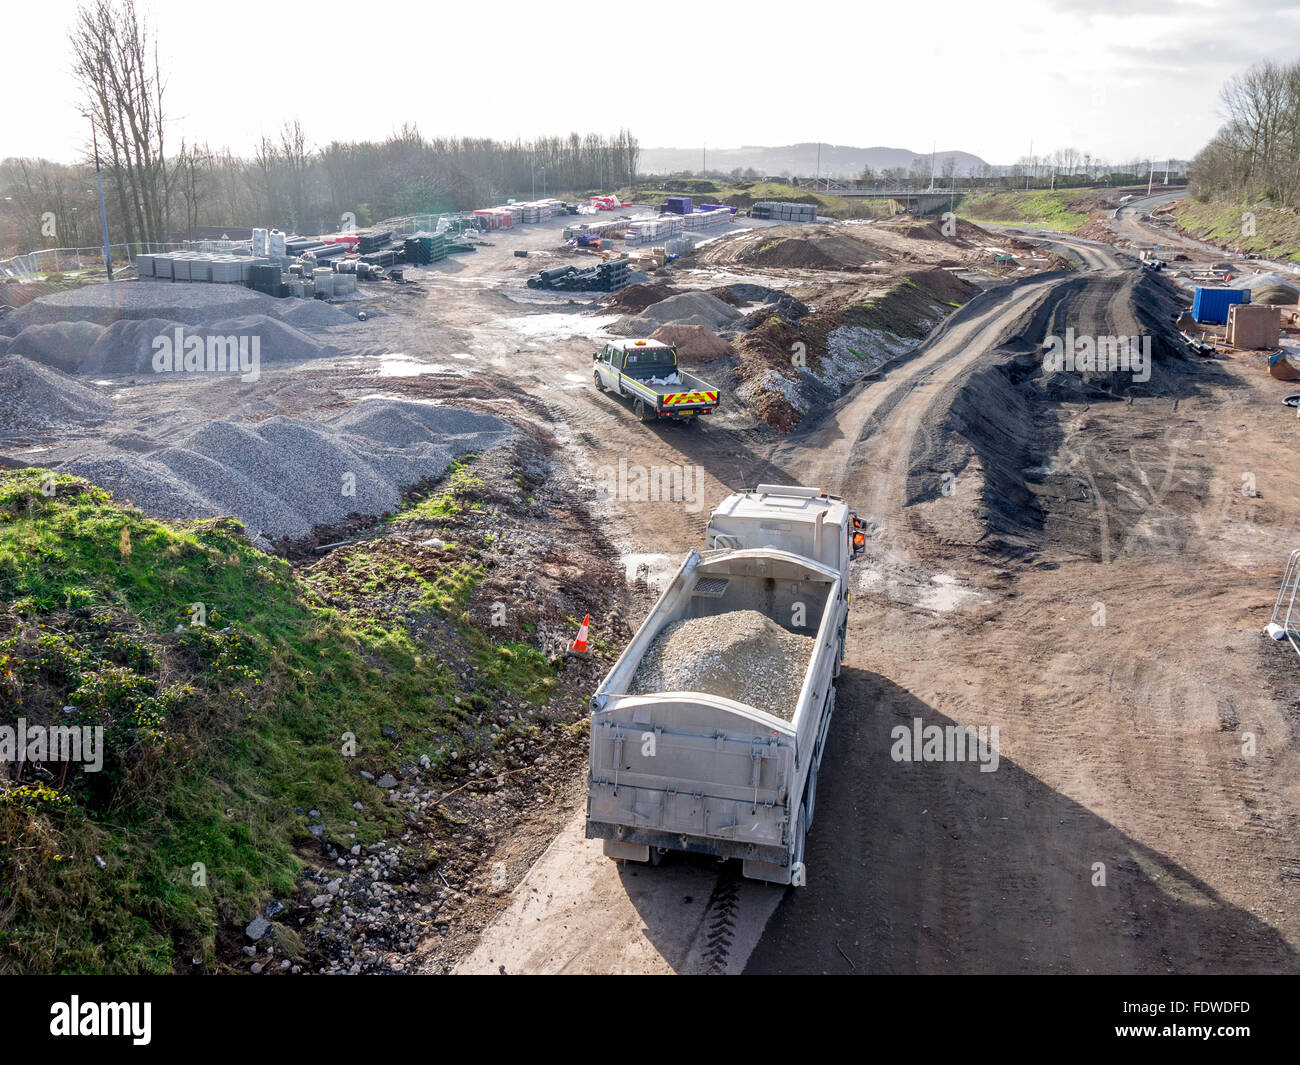 Lorry arriving on site to unload stone for a new road layout - Stock Image